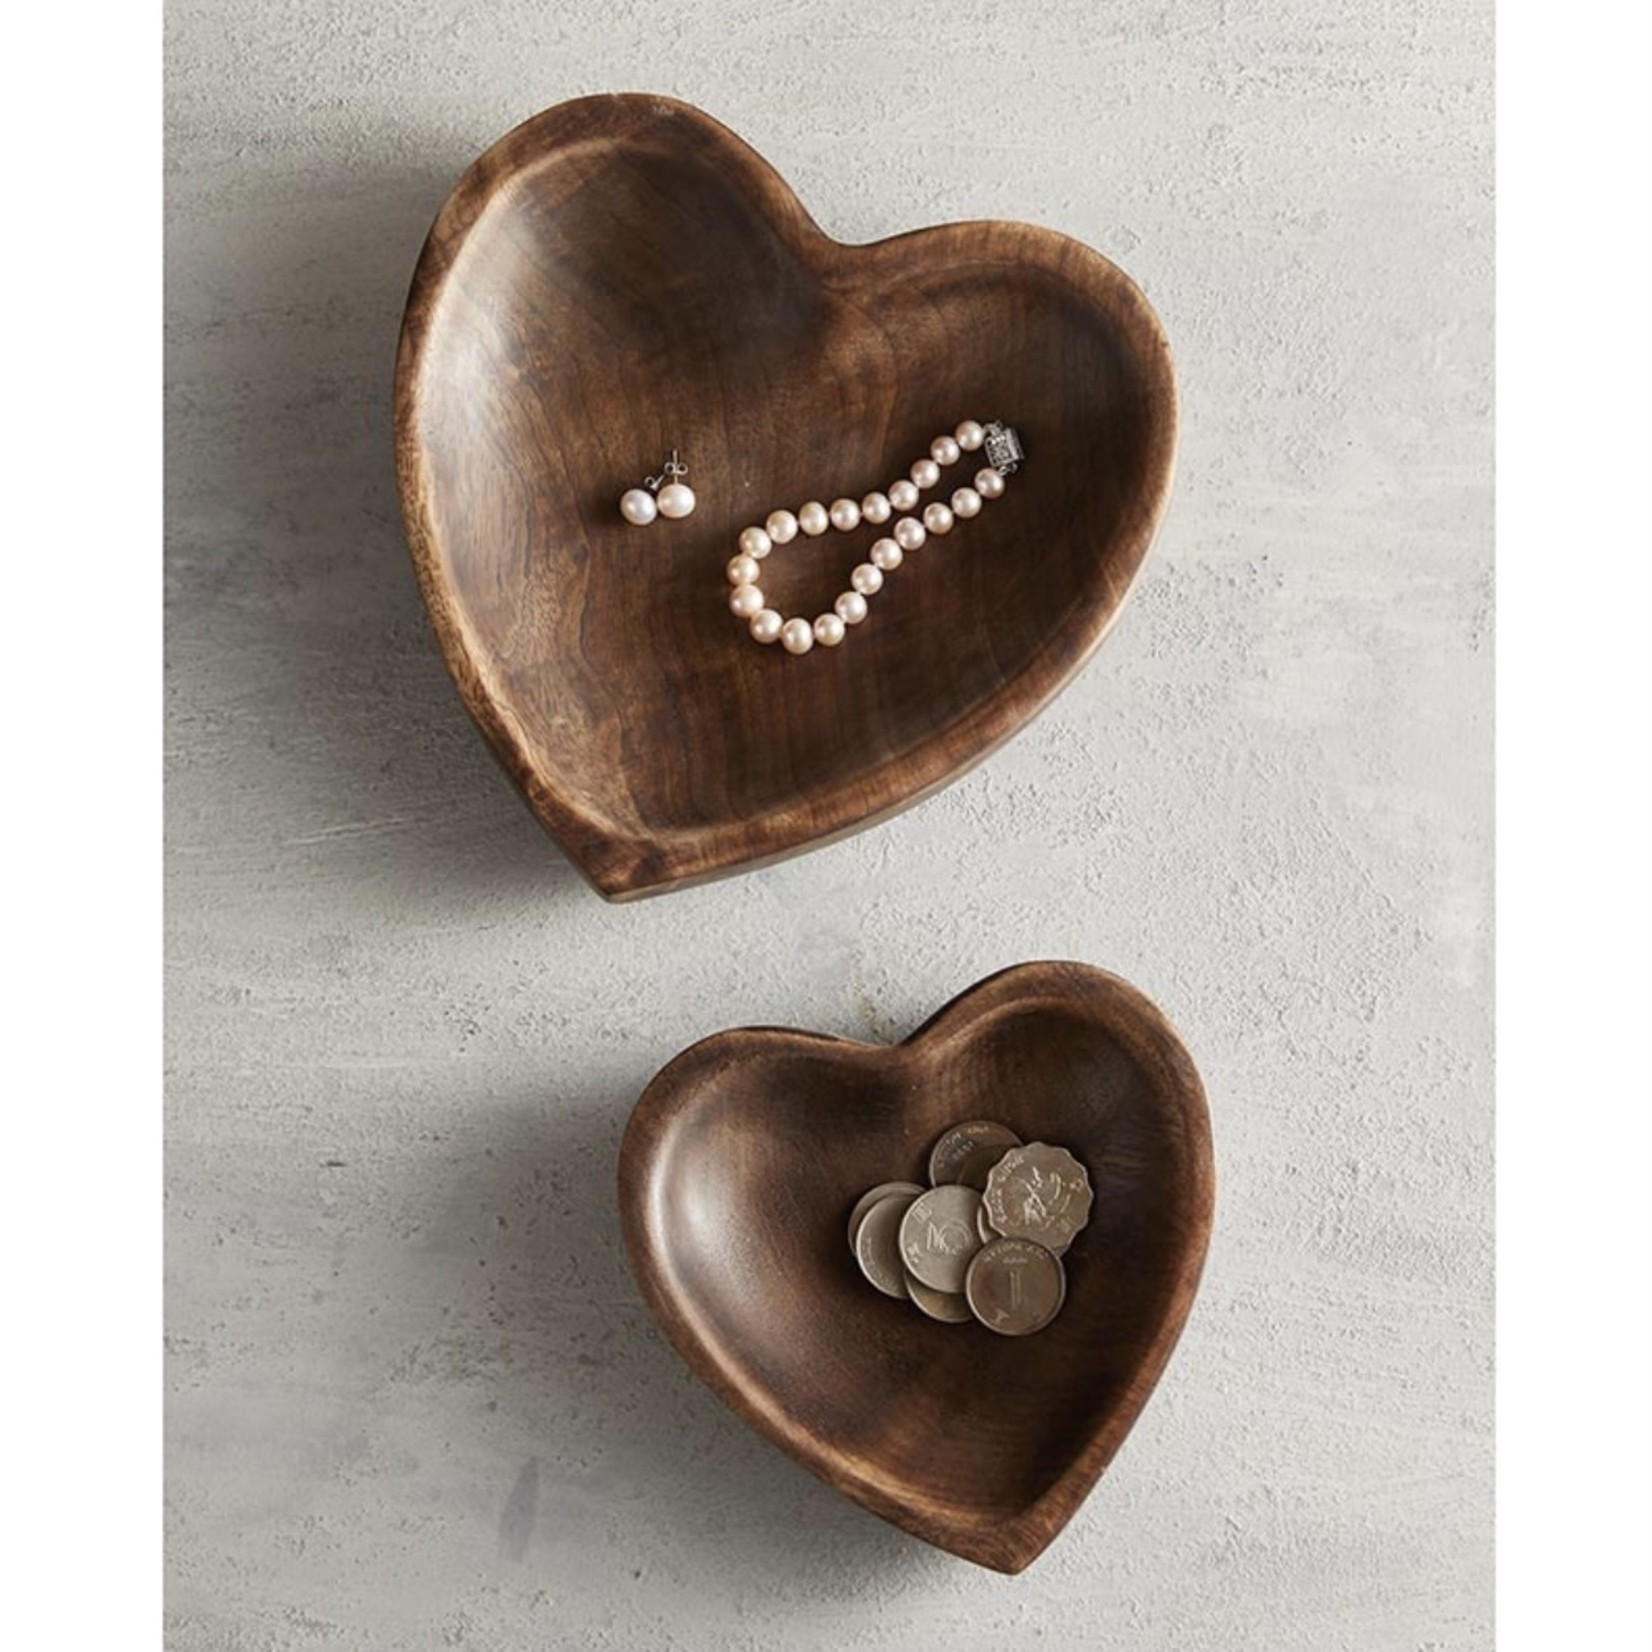 47th & Main Wooden Heart (Large)